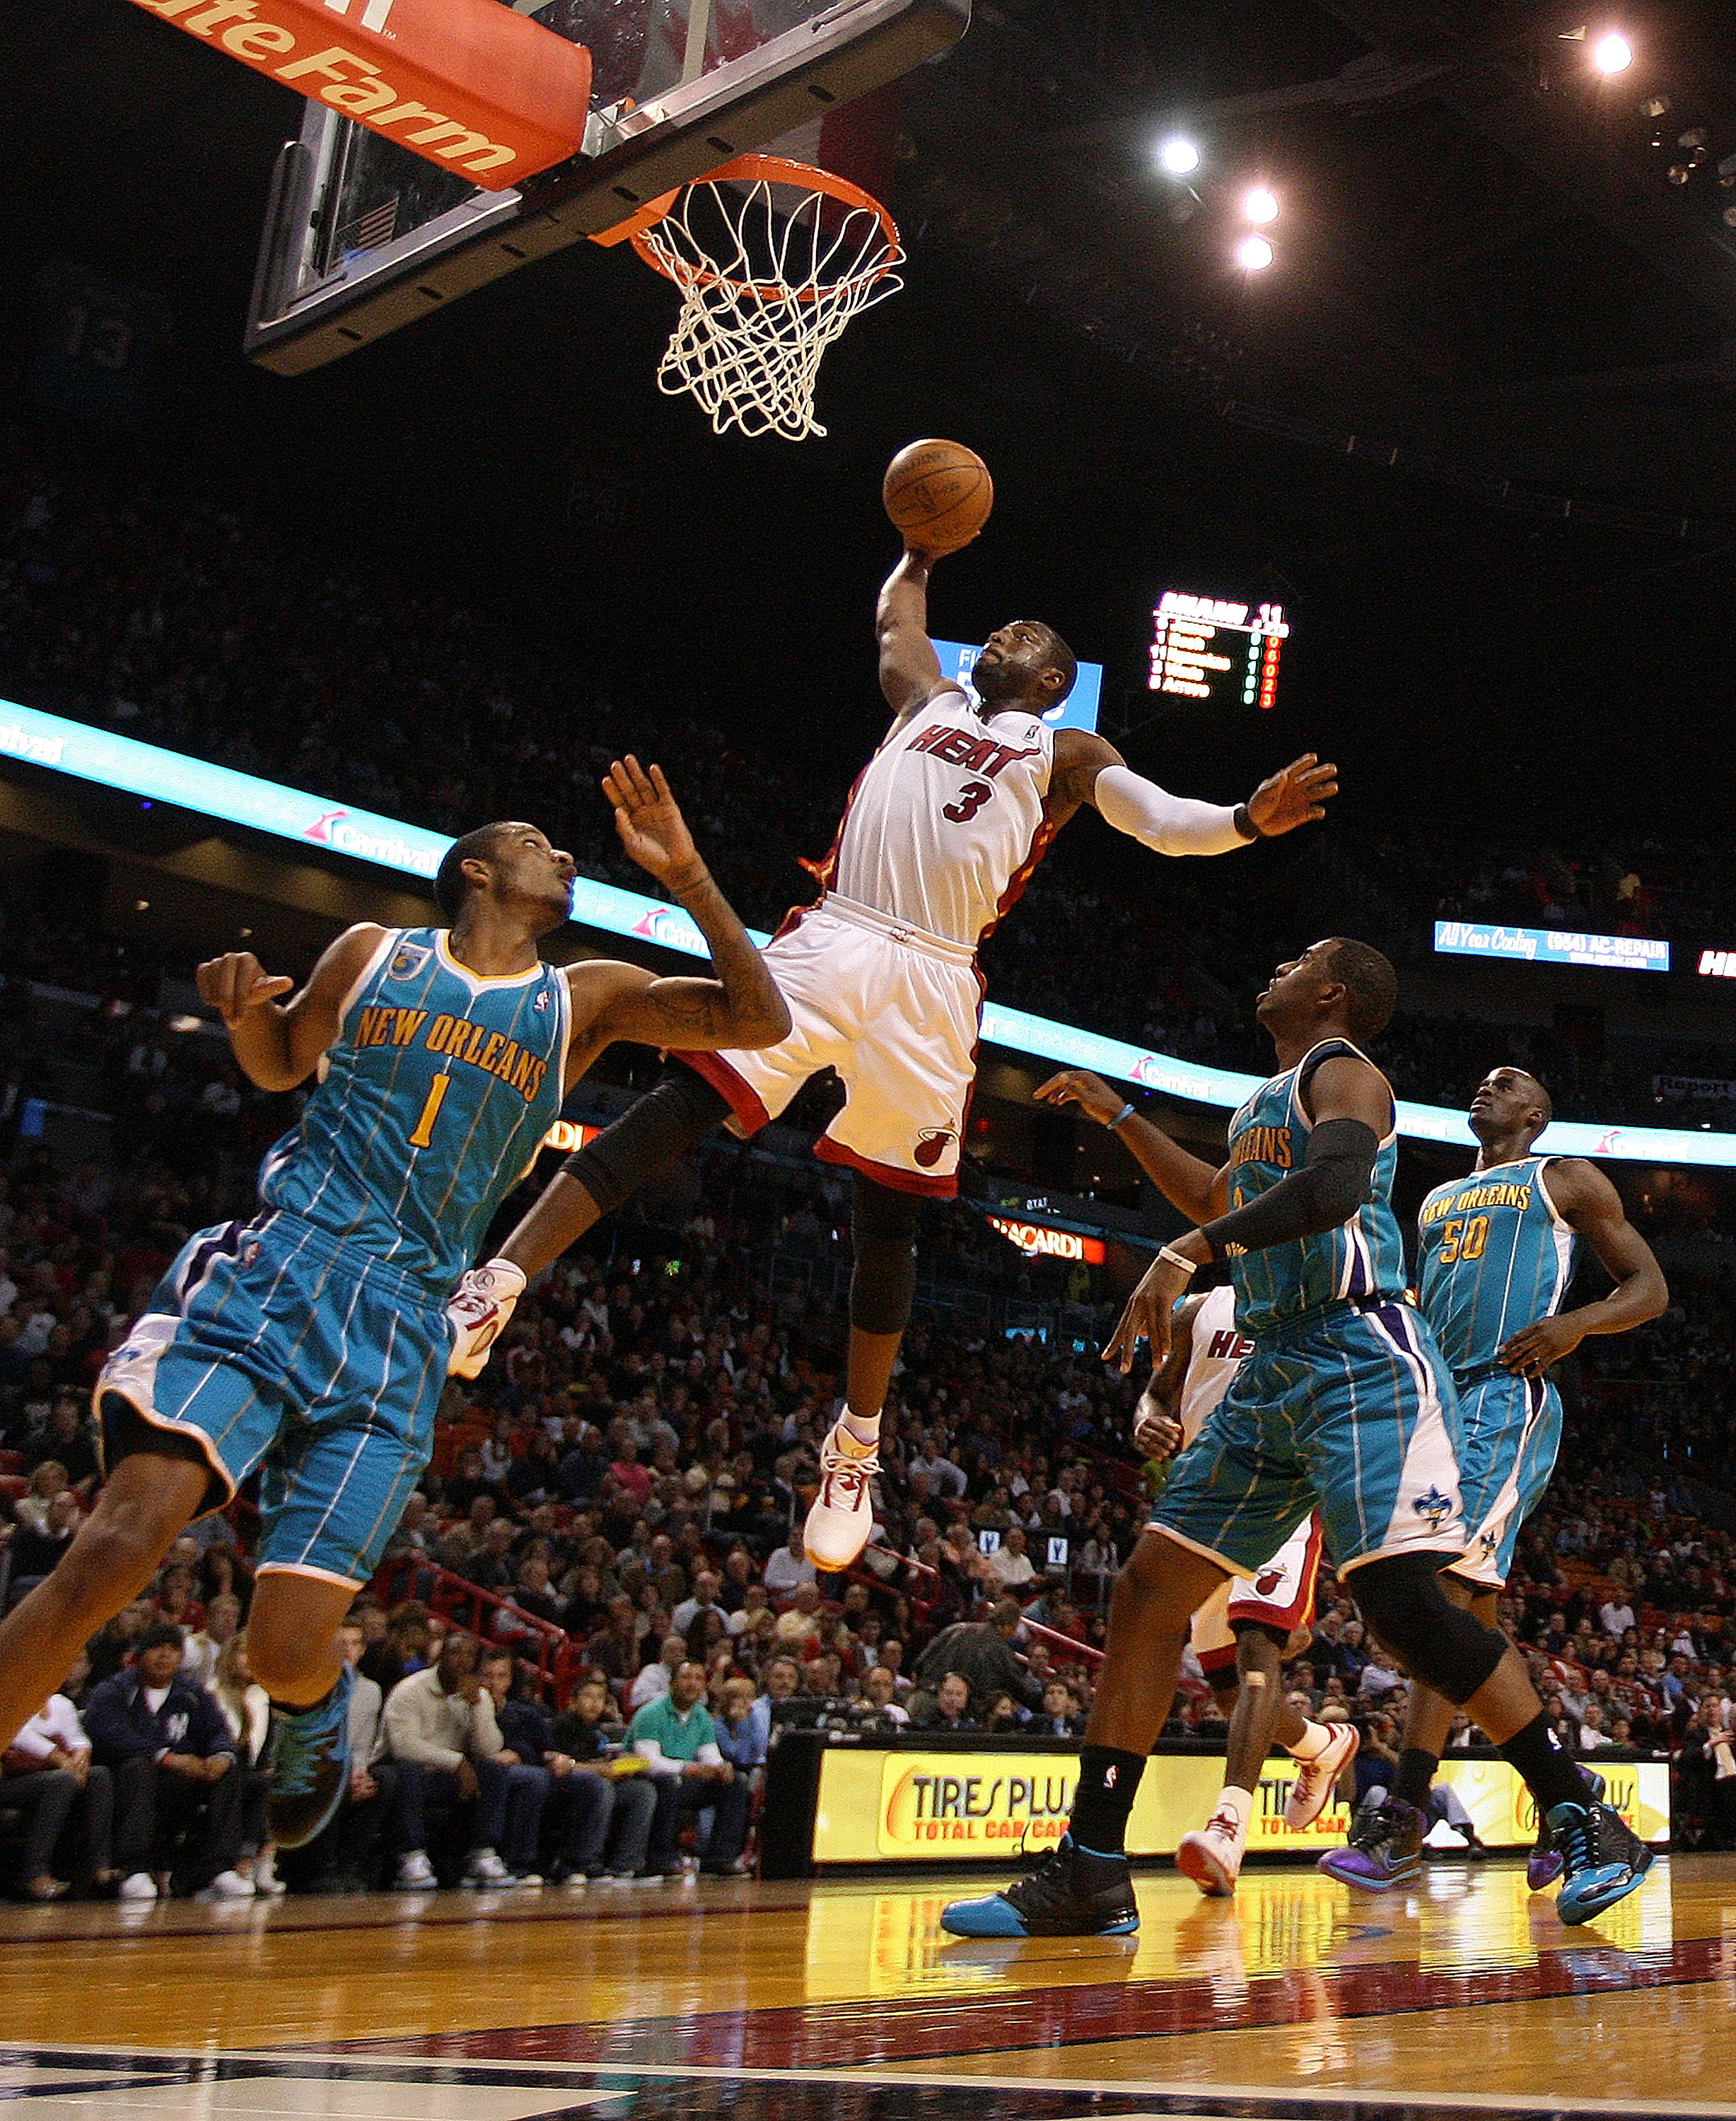 MIAMI, FL - DECEMBER 13:  Dwyane Wade #3 of the Miami Heat drives to the hoop during a game against the New Orleans Hornets at American Airlines Arena on December 13, 2010 in Miami, Florida. NOTE TO USER: User expressly acknowledges and agrees that, by do